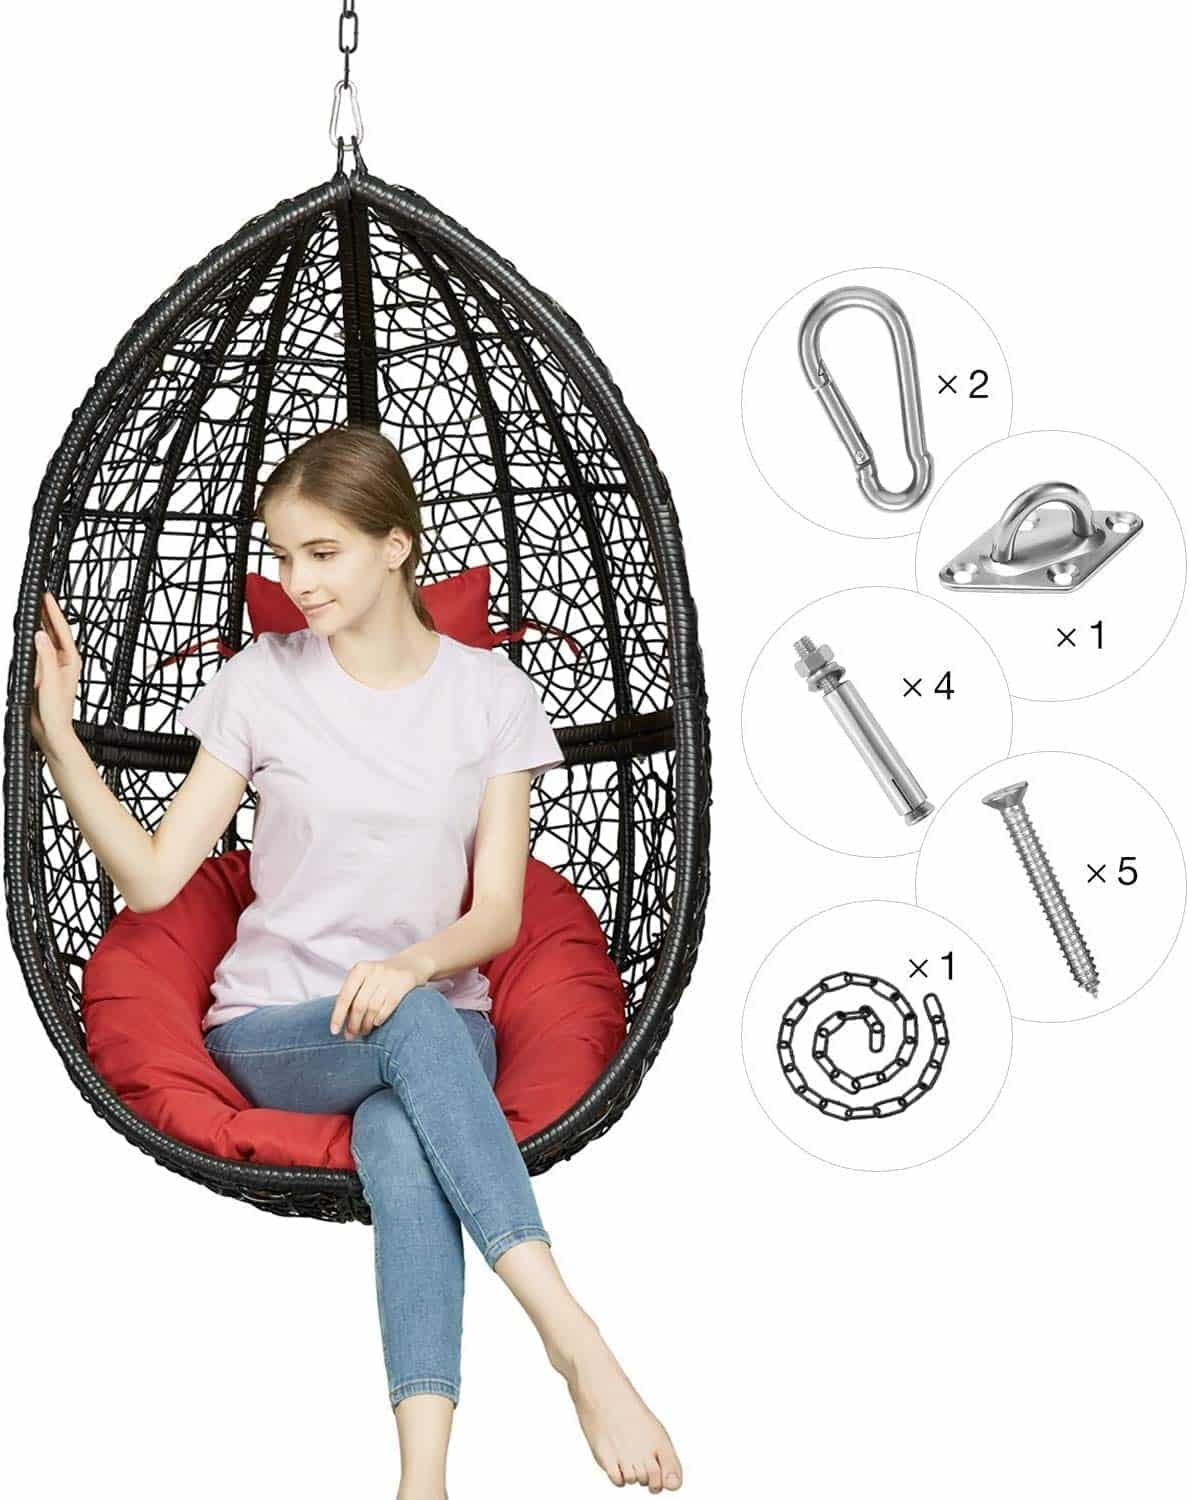 Greenstell Hanging Egg Chair With Red Cushion